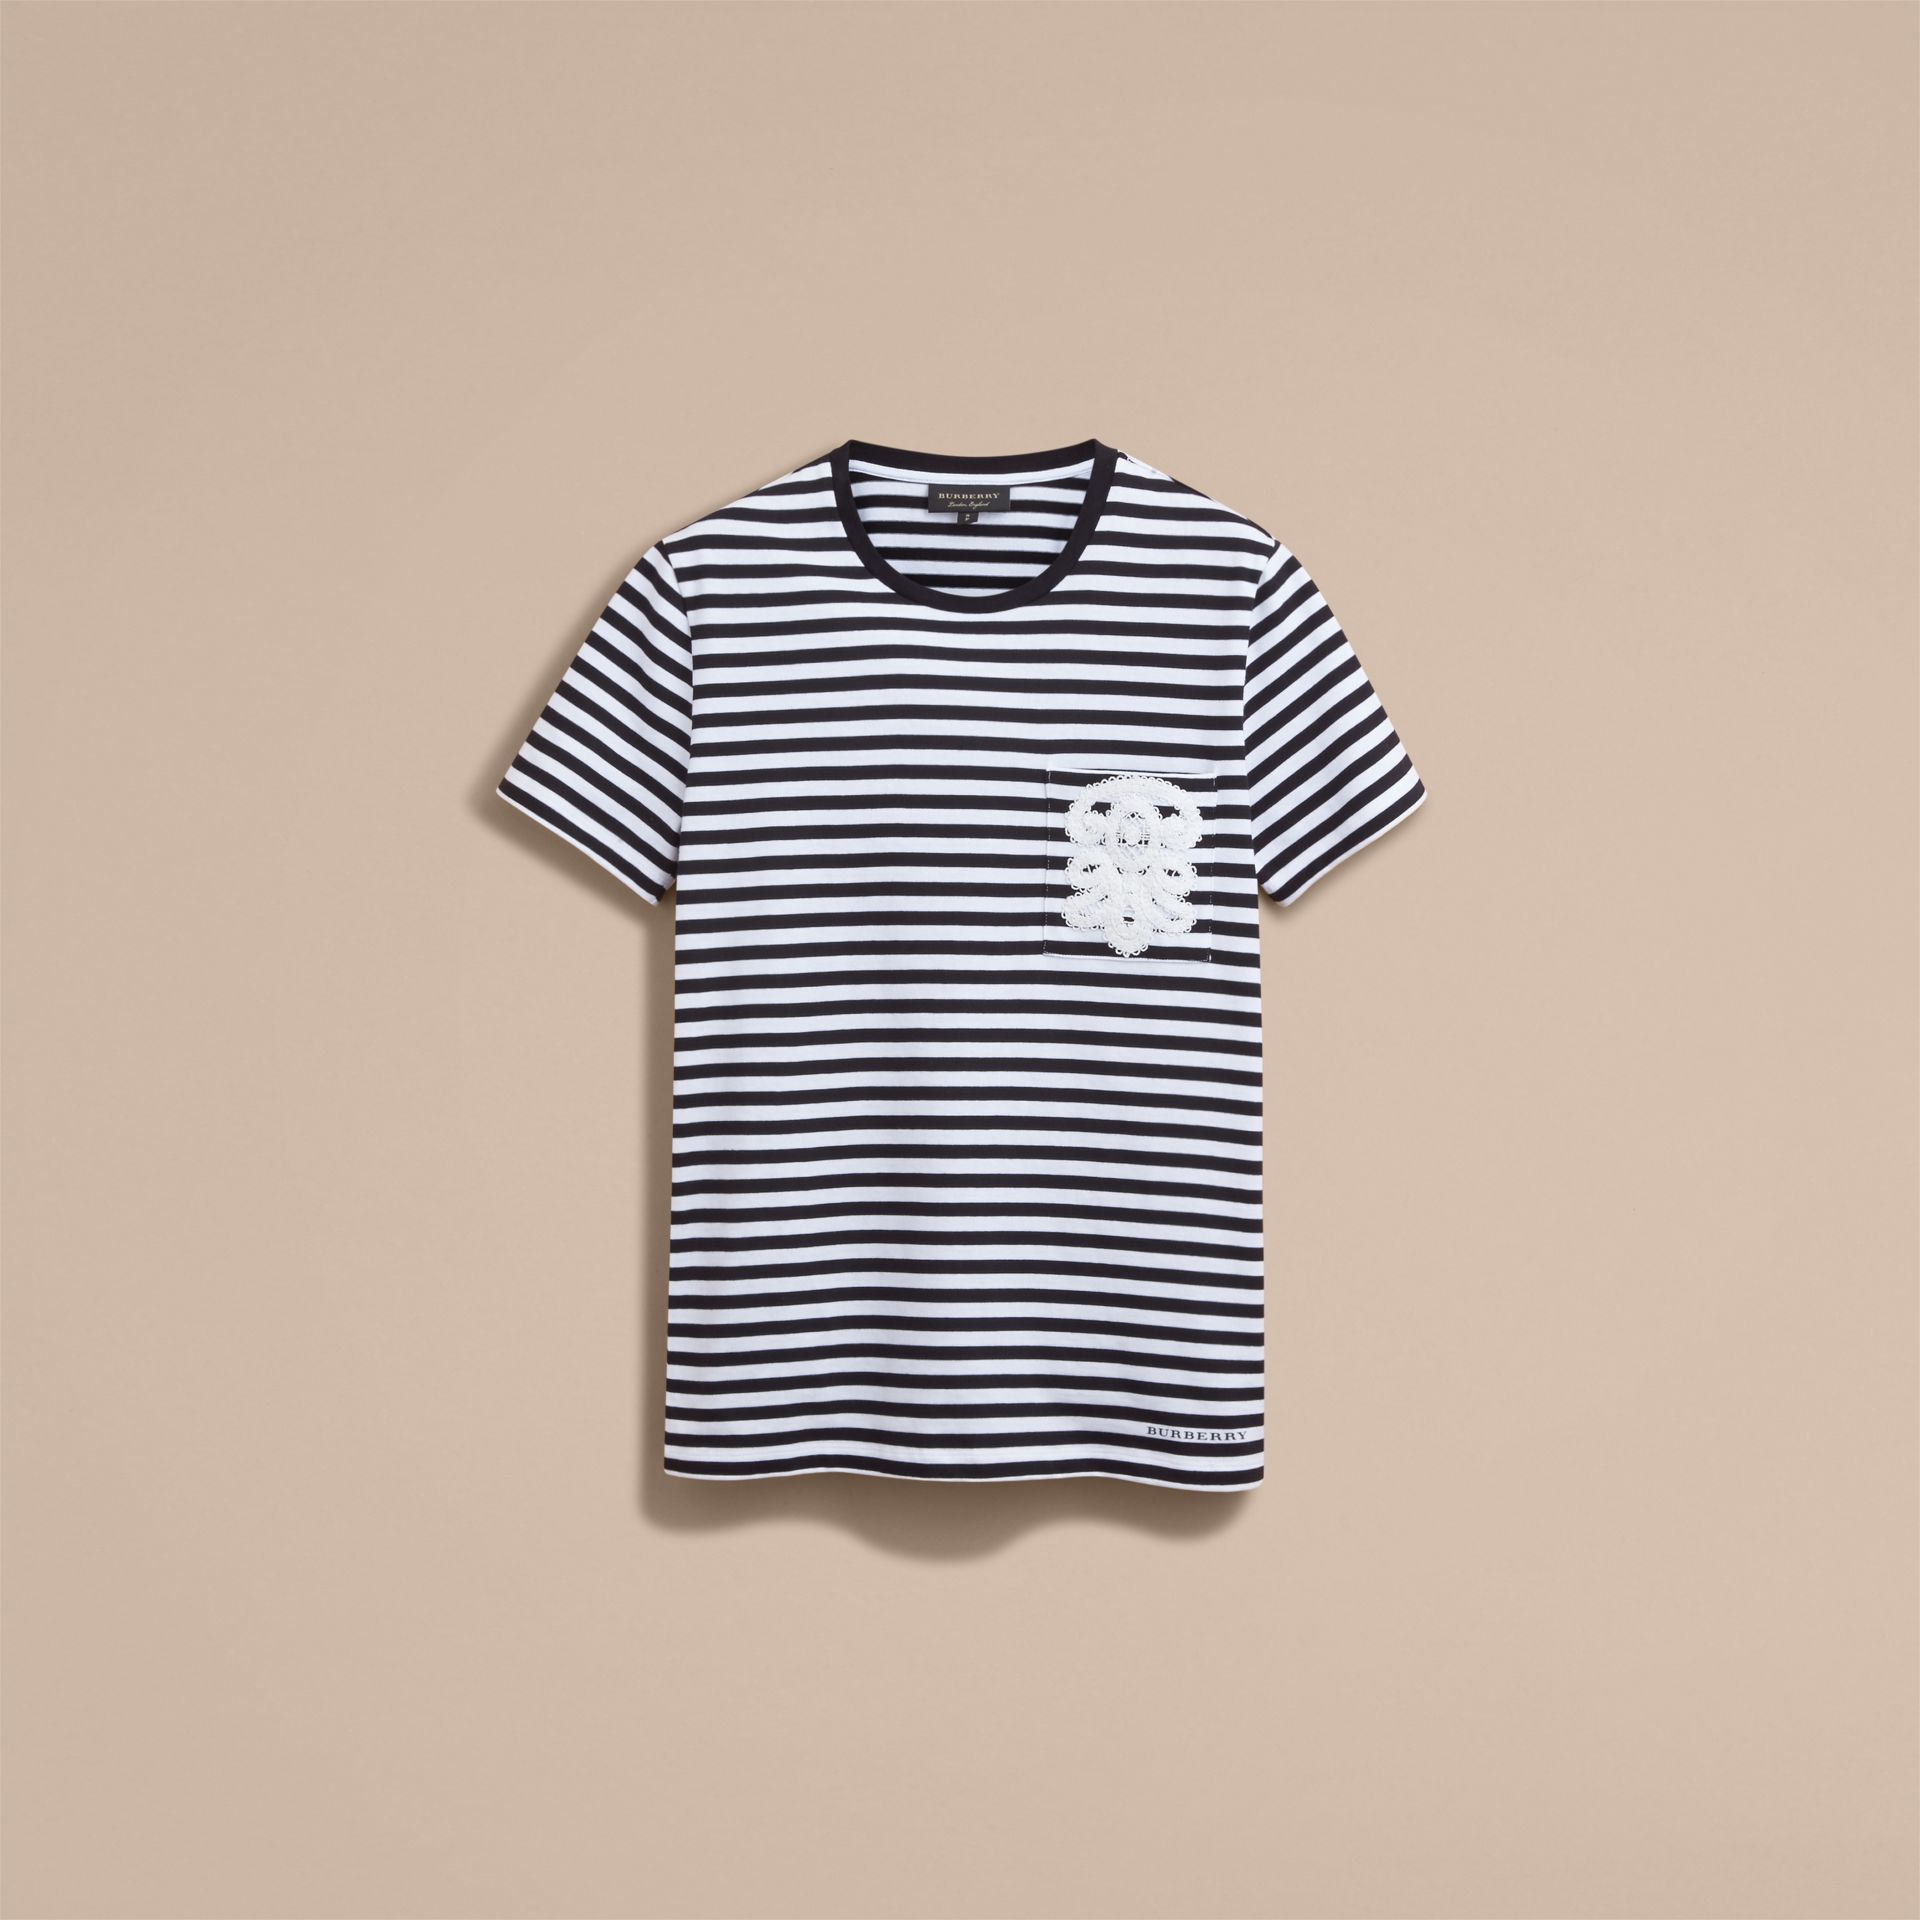 Lace Appliqué Detail Breton Stripe Cotton T-shirt in Black/white - Men | Burberry - gallery image 4